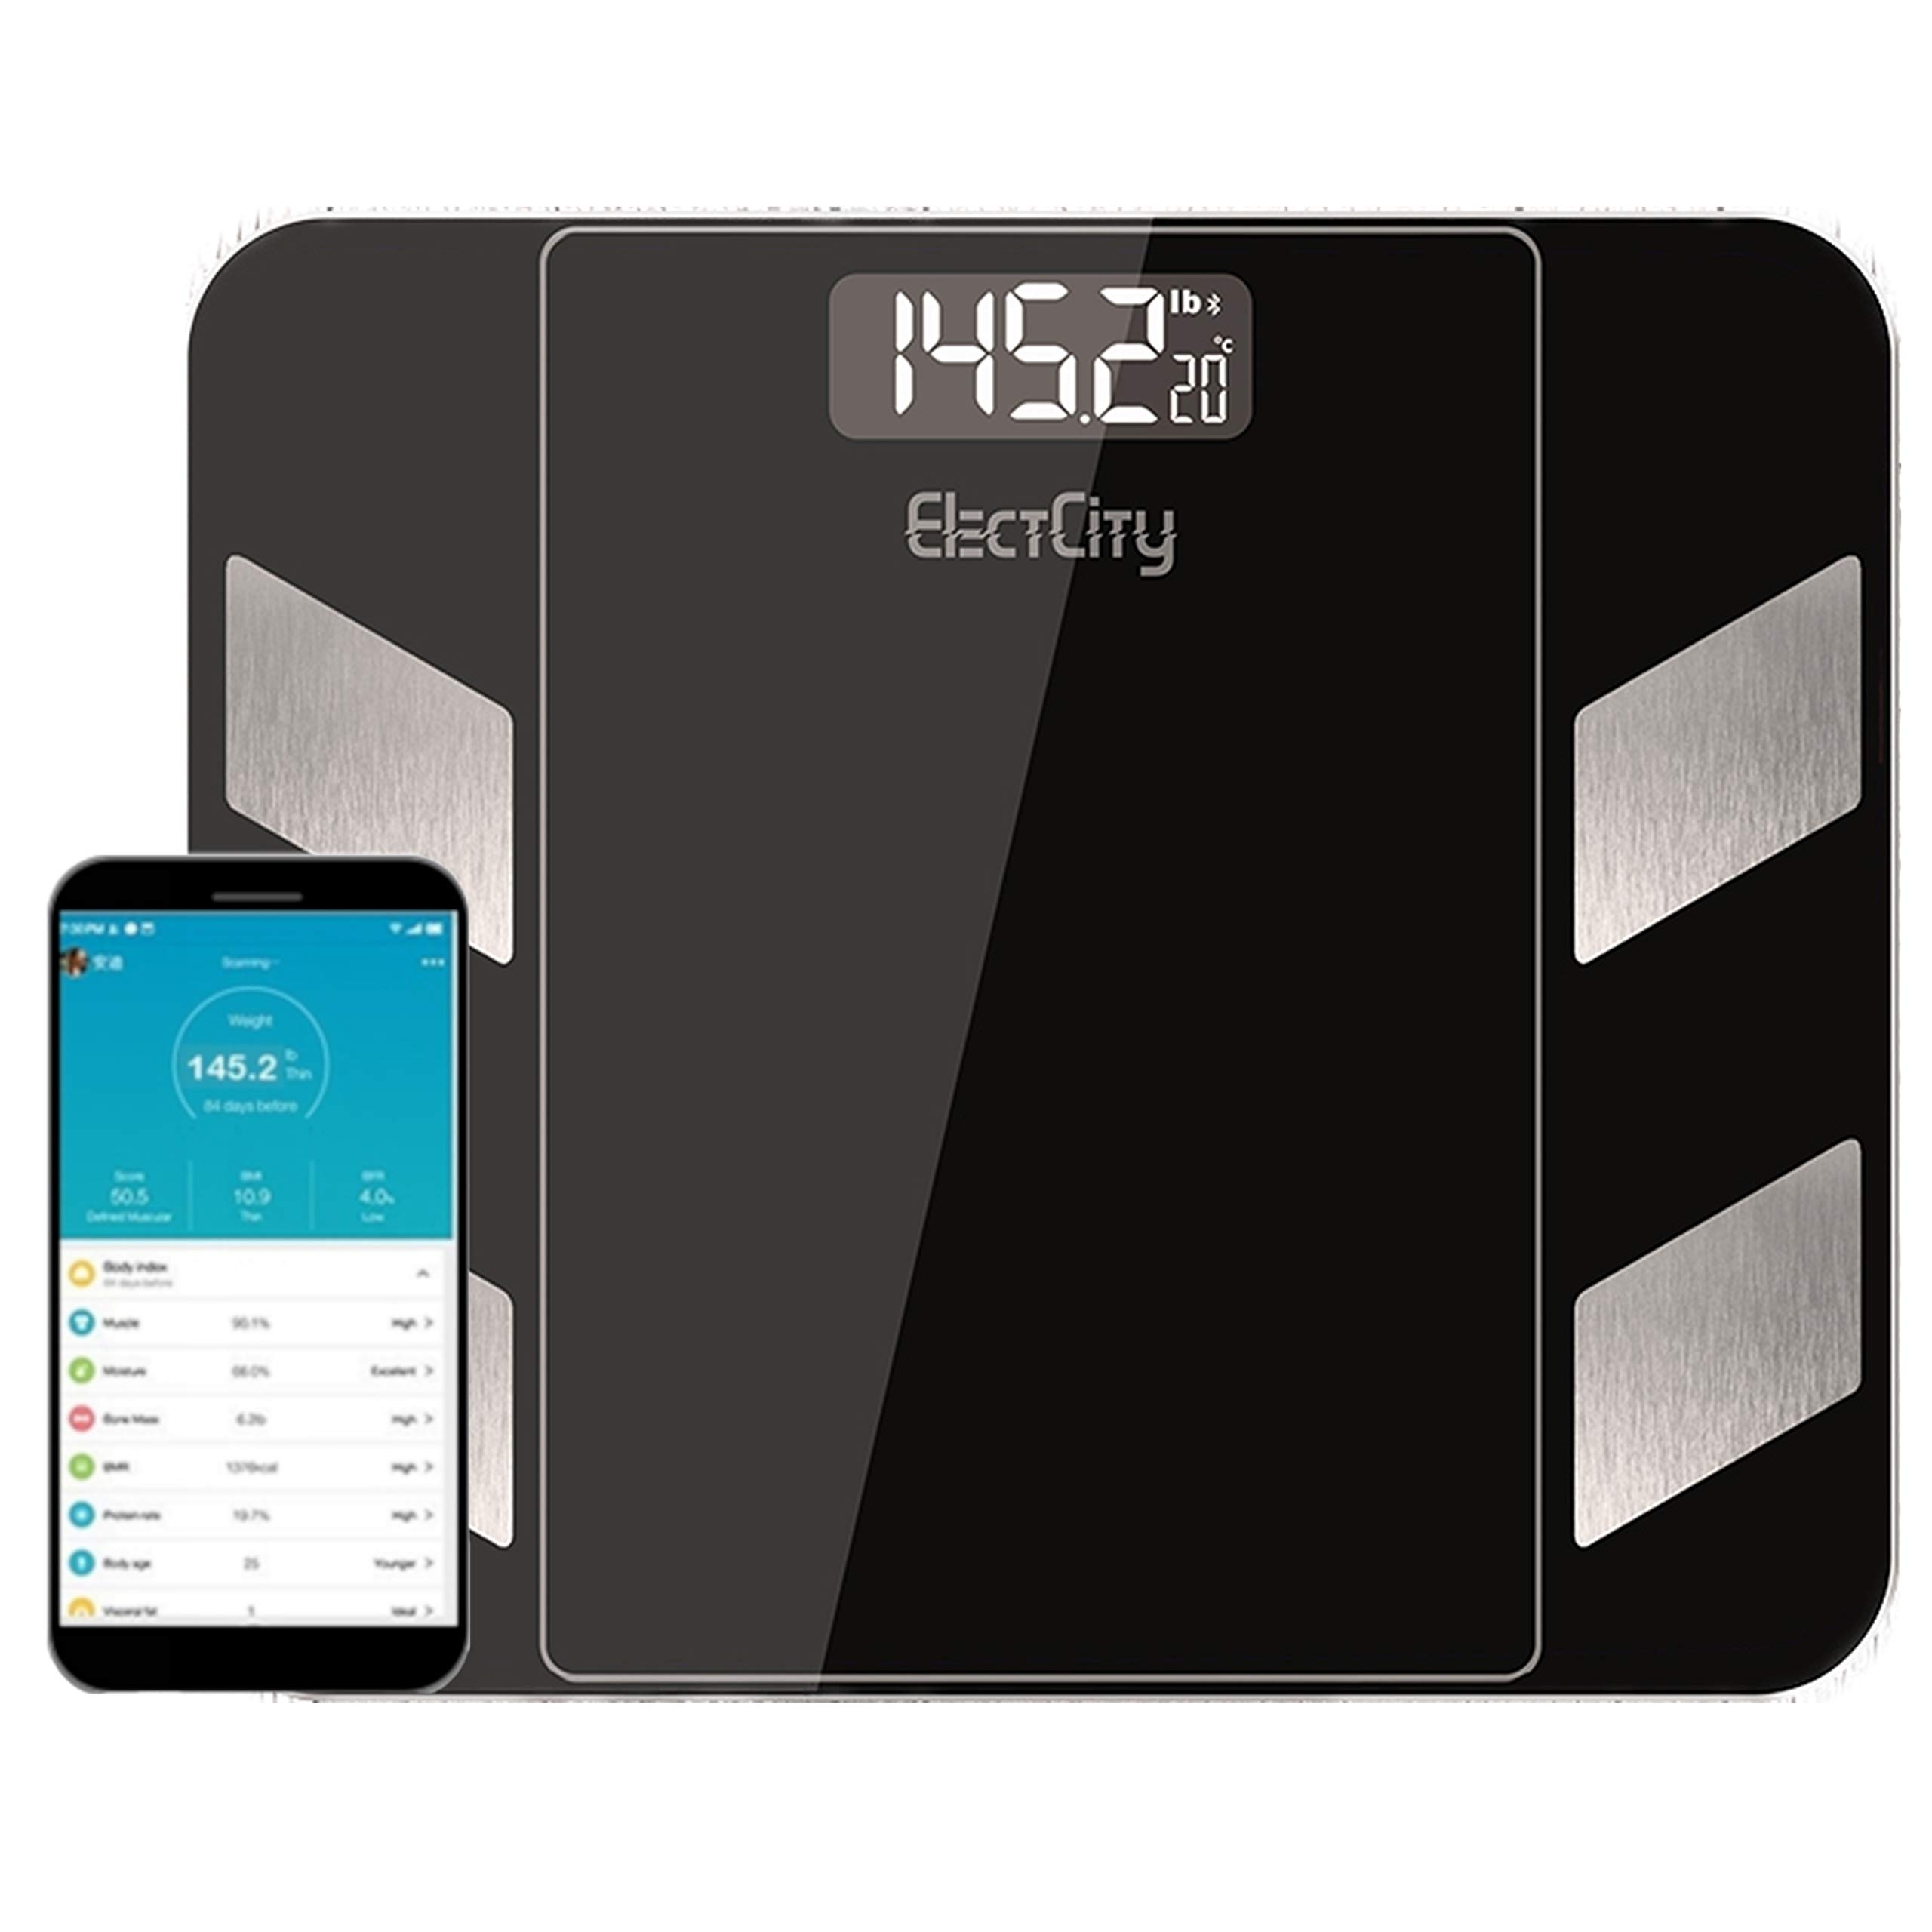 ElectCity Bluetooth Body Fat Scale Smart BMI Scale Digital Bathroom Weight Scale 18 Body Composition Analyzer Most Accurate Scale for Health and Fitness FDA Approved Free iOS and Android App 396 lbs by ElectCity